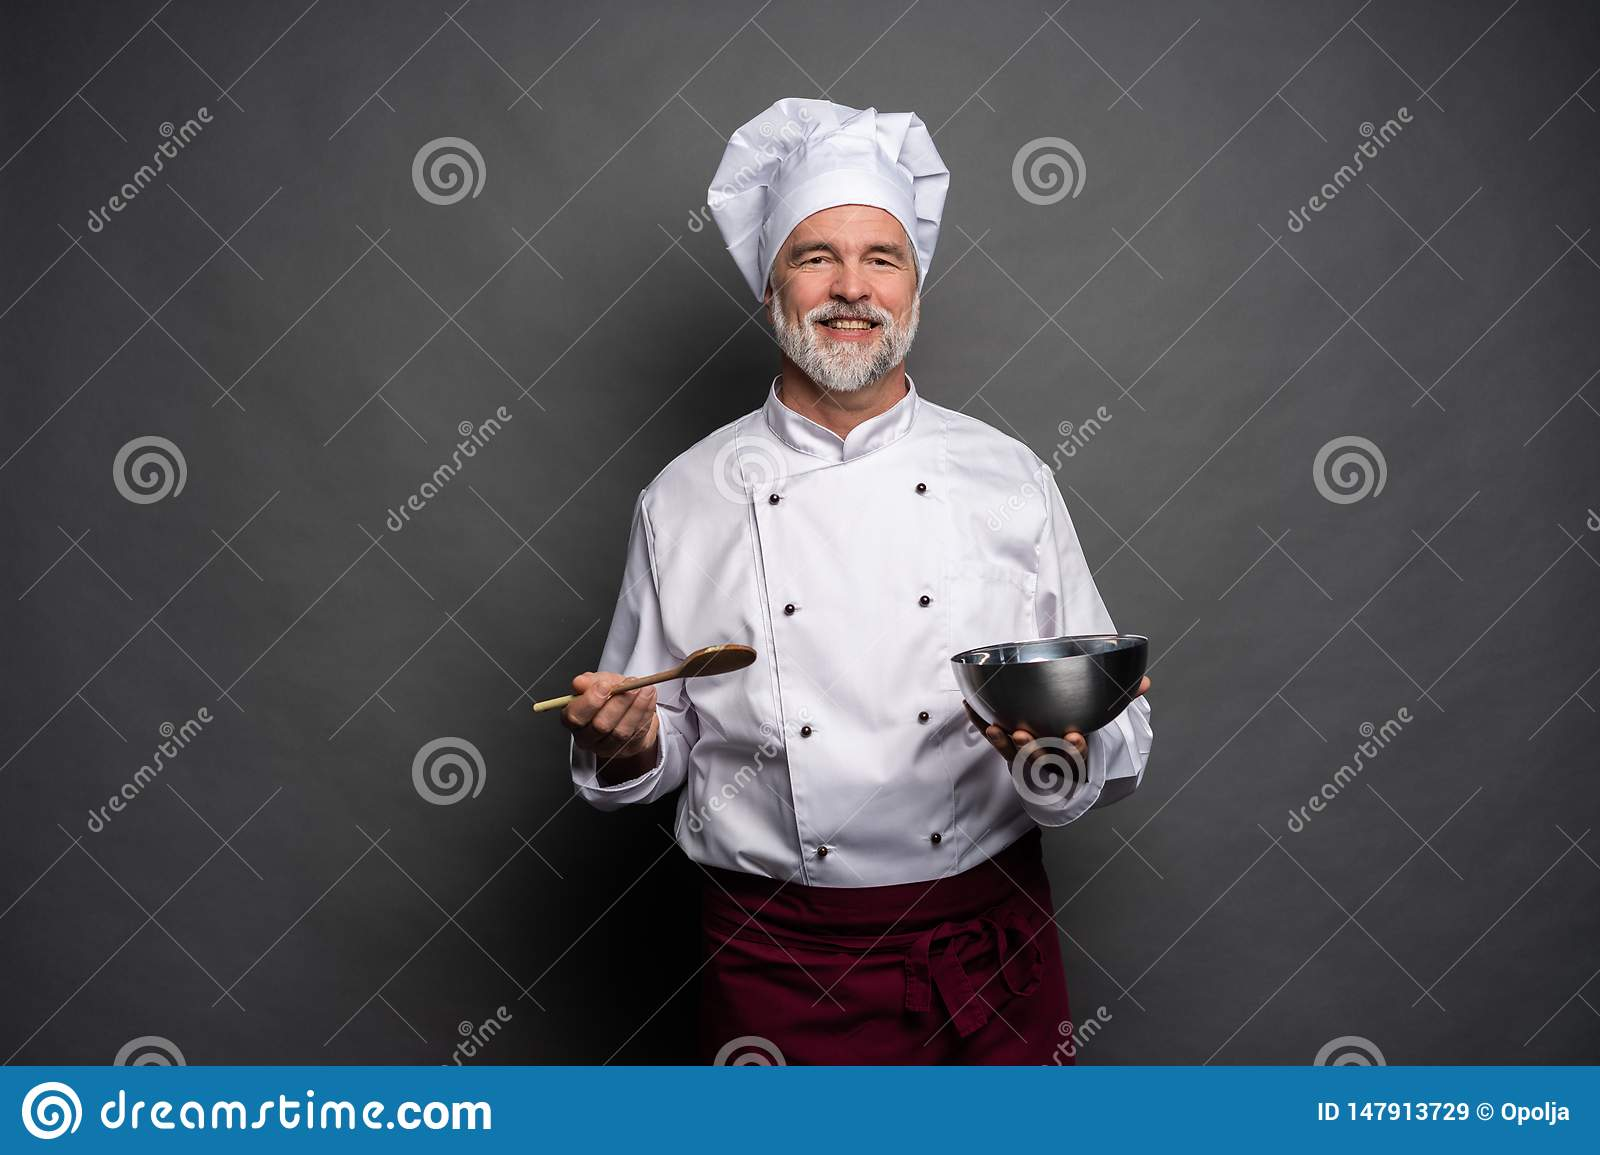 Smiling mature male chef with bowl and cooking vane in hands on black background.